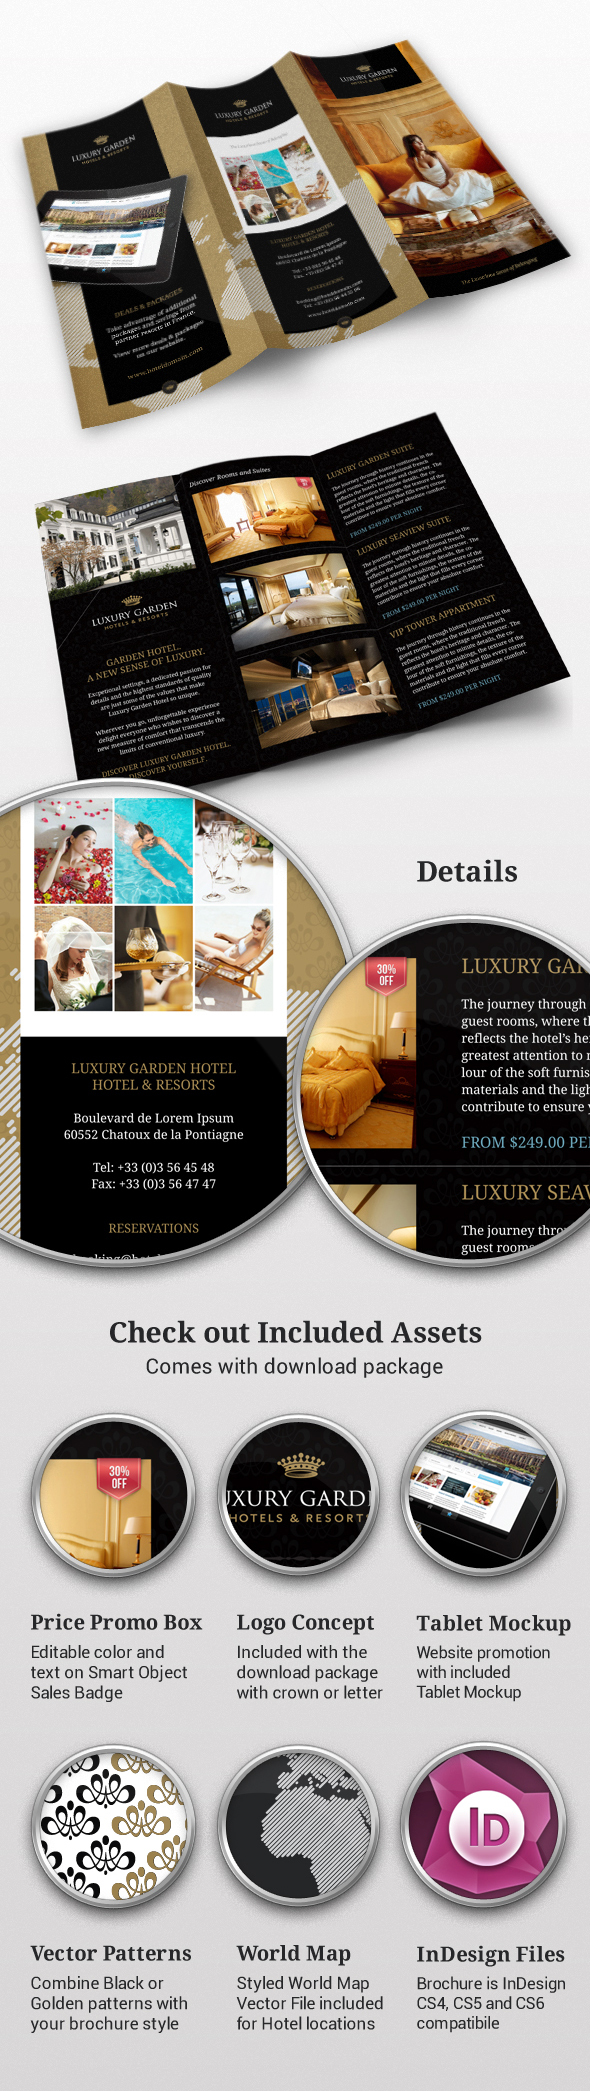 TriFold Contemporary Hotel Indesign Brochure On Behance